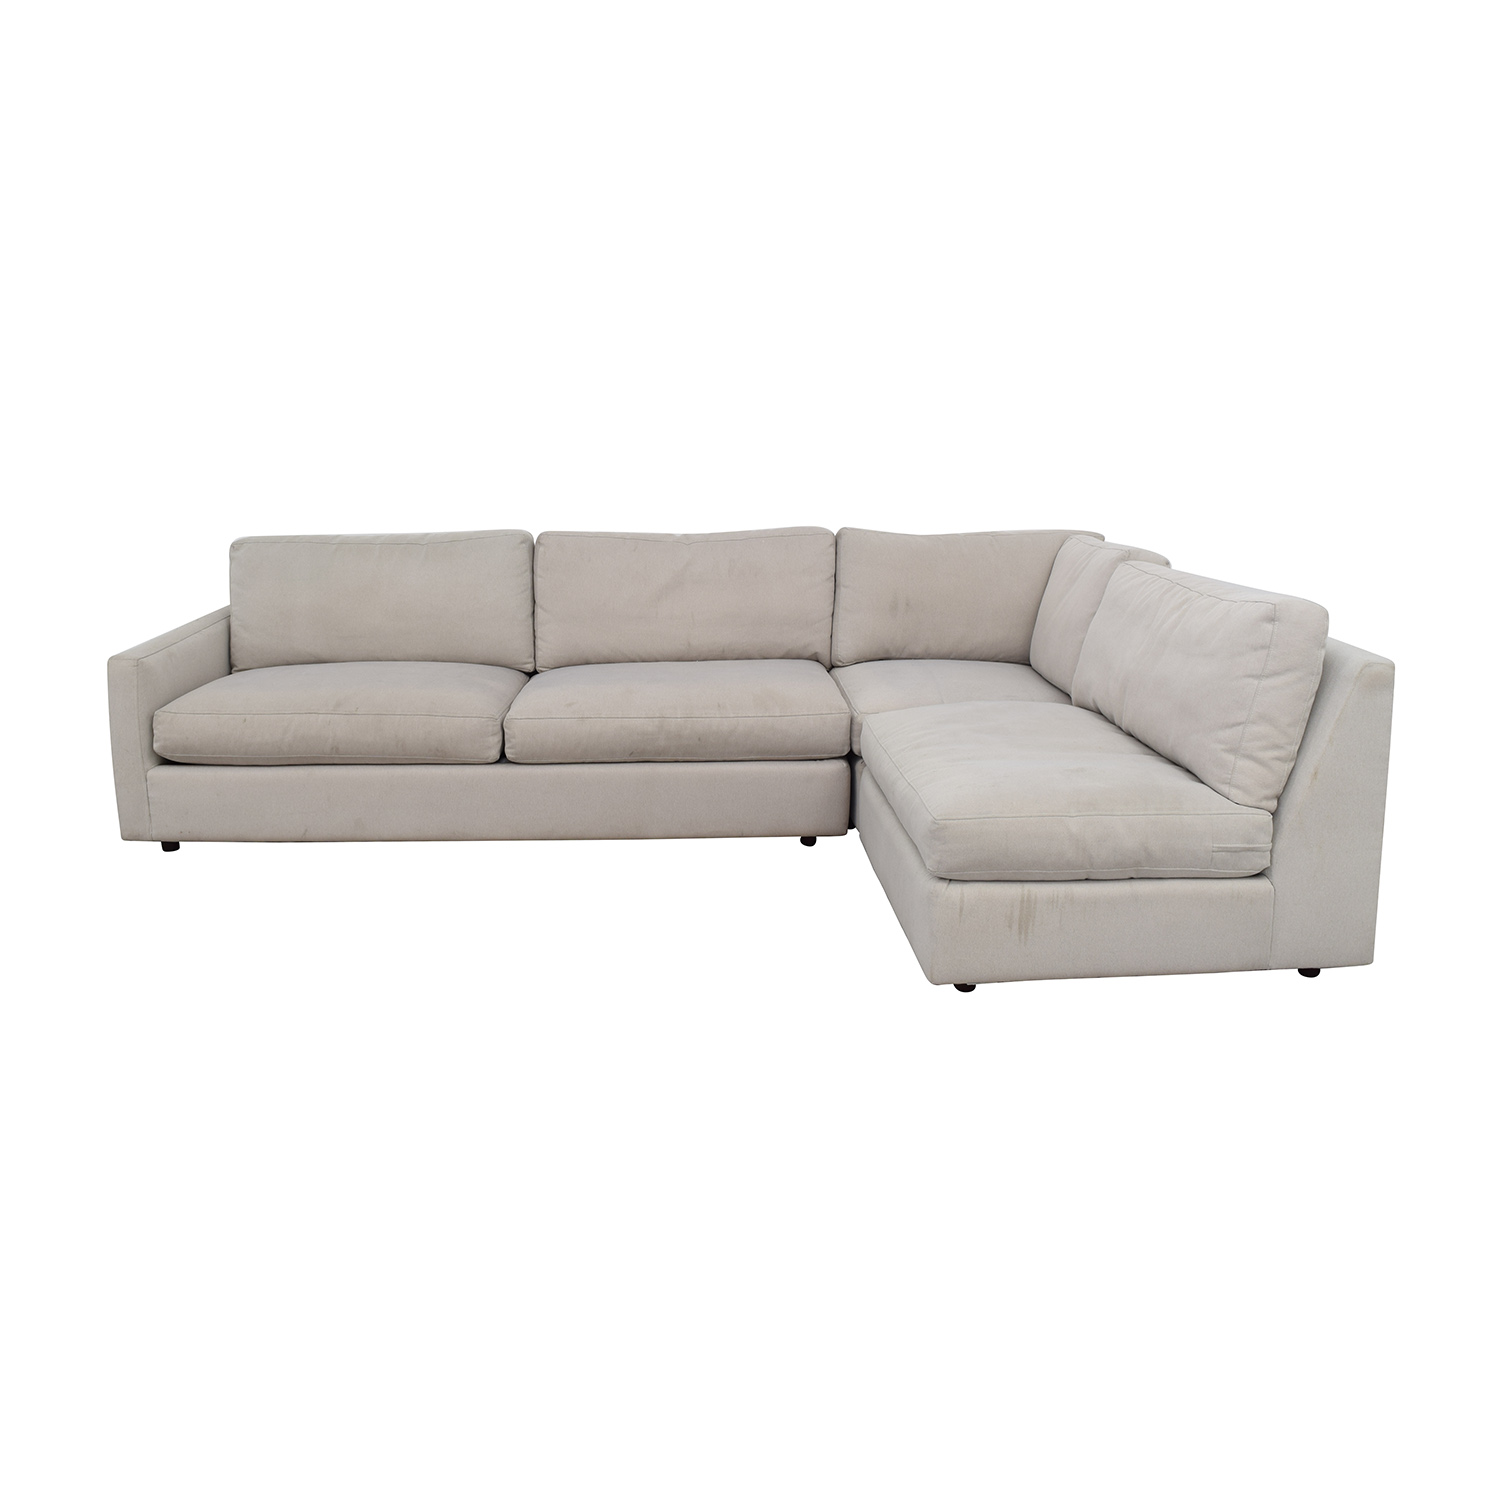 85 off room board room board easton sectional sofas